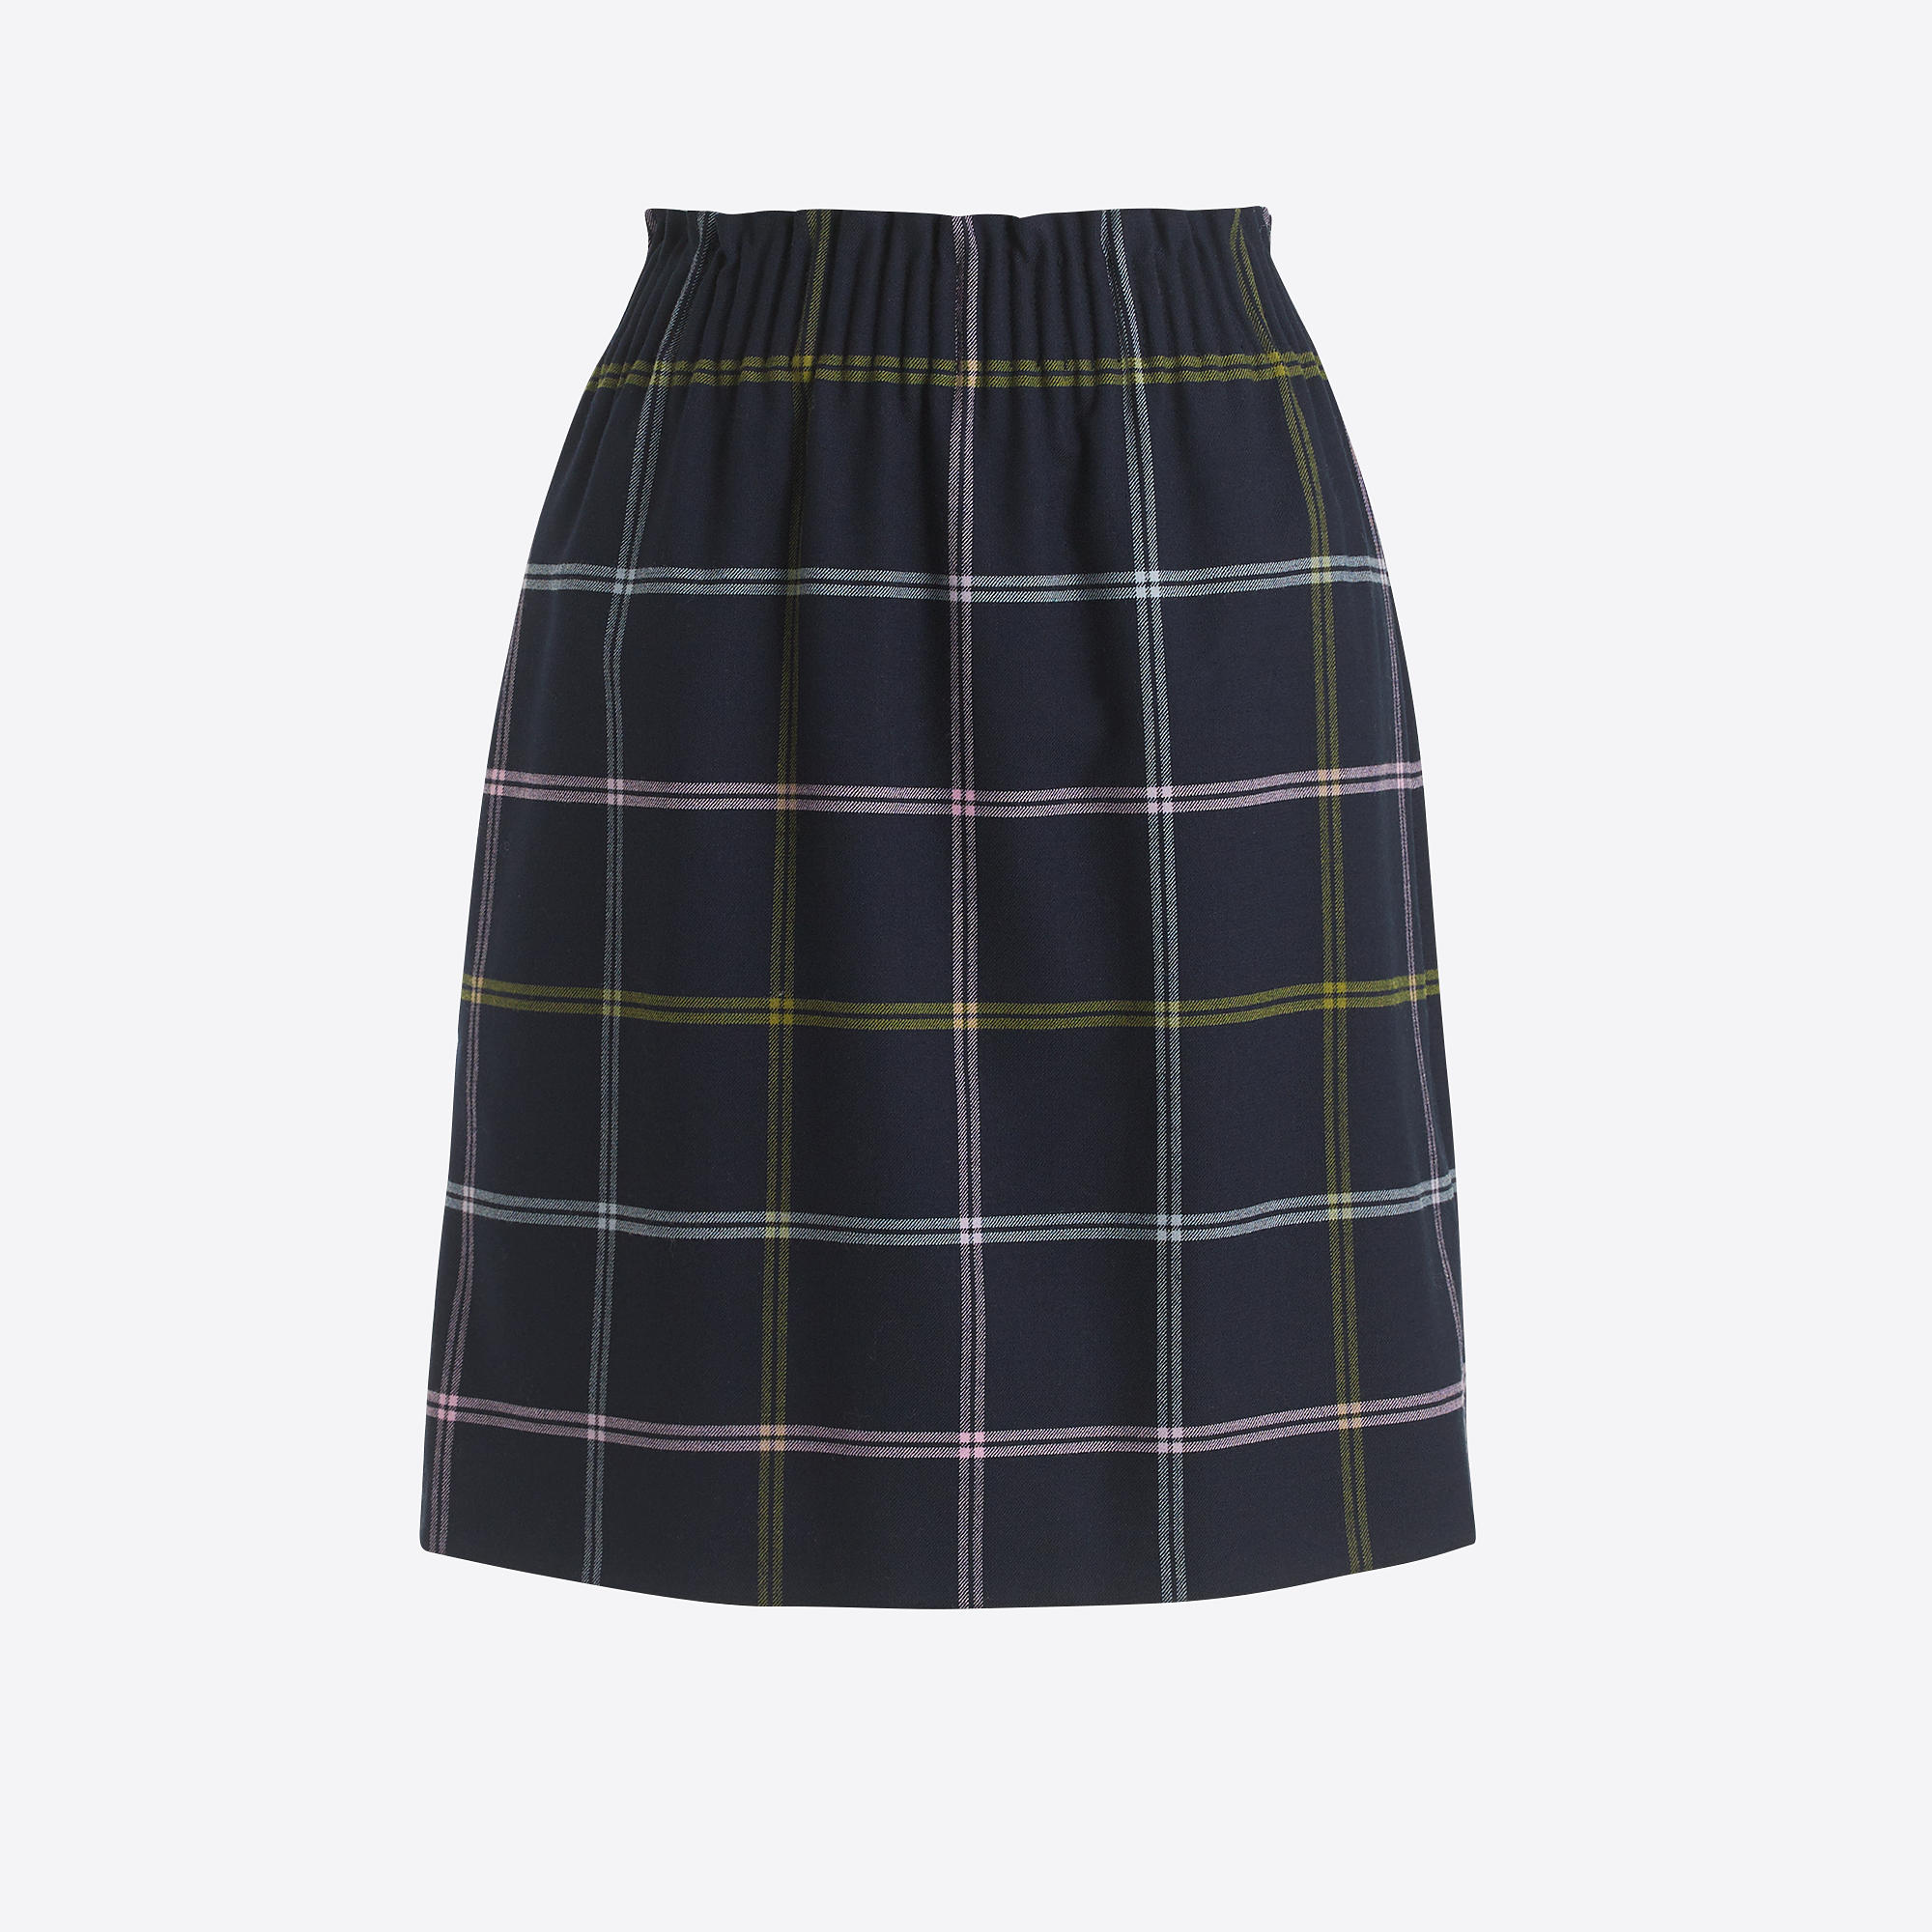 Discover women's plus size shorts & skirts with ASOS. Shop for high waisted and flowing plus size skirts and casual or smart shorts in all styles and colours.